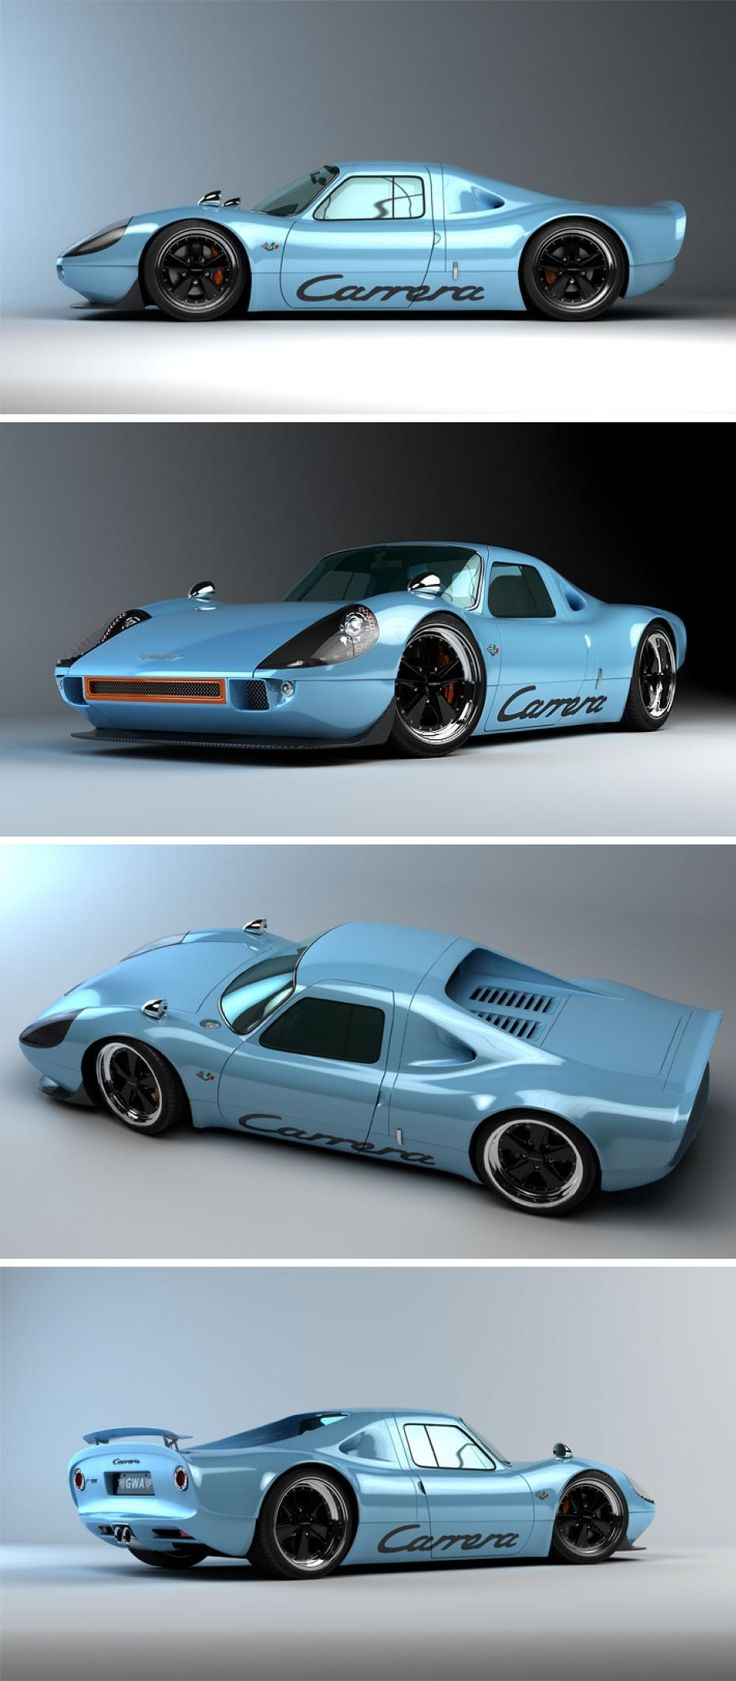 Porsche P/904 Carrera - Texas tuner, Gullwing America,  used the base of a second-generation Porsche Boxster, complete with a six-speed manual gearbox and 3.4-litre engine, producing 291bhp.  Hybrid aluminium composite body,